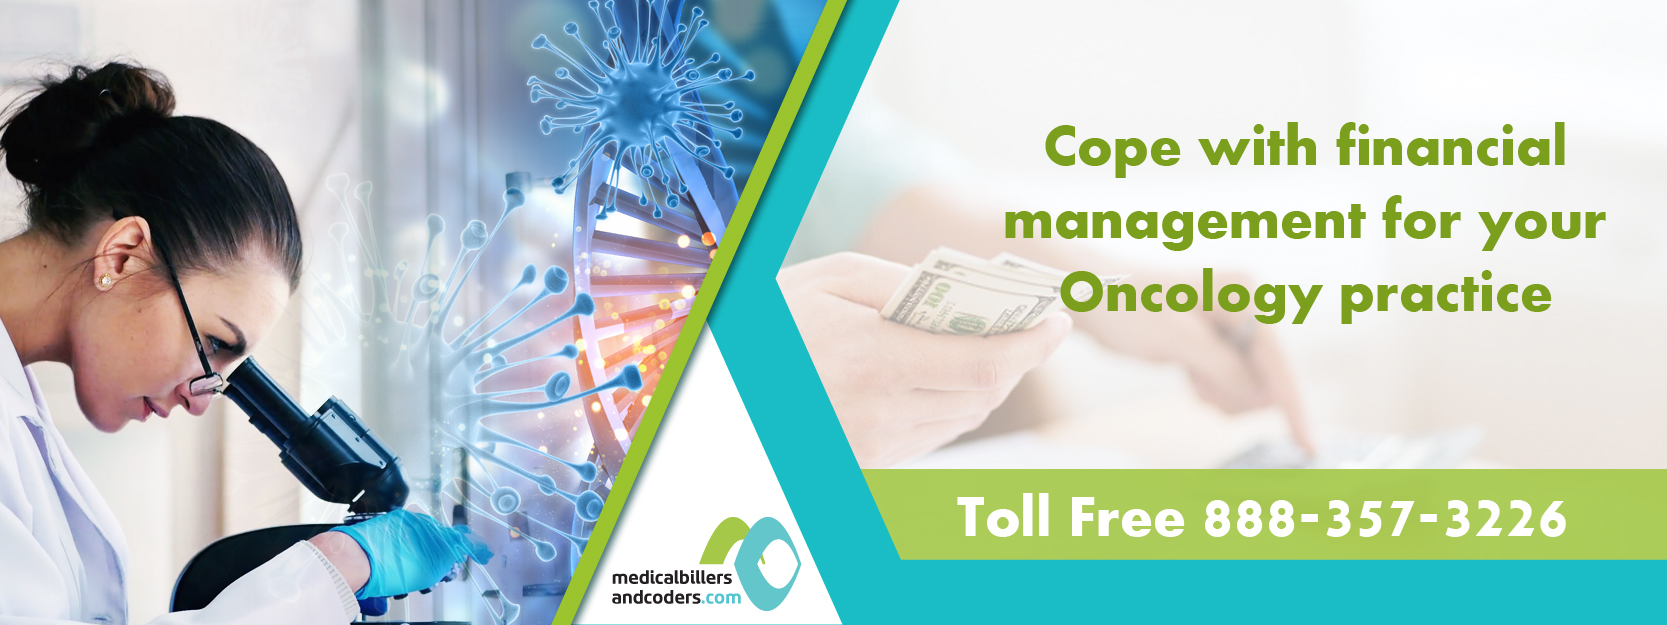 Cope-with-financial-management-for-your-Oncology-practice